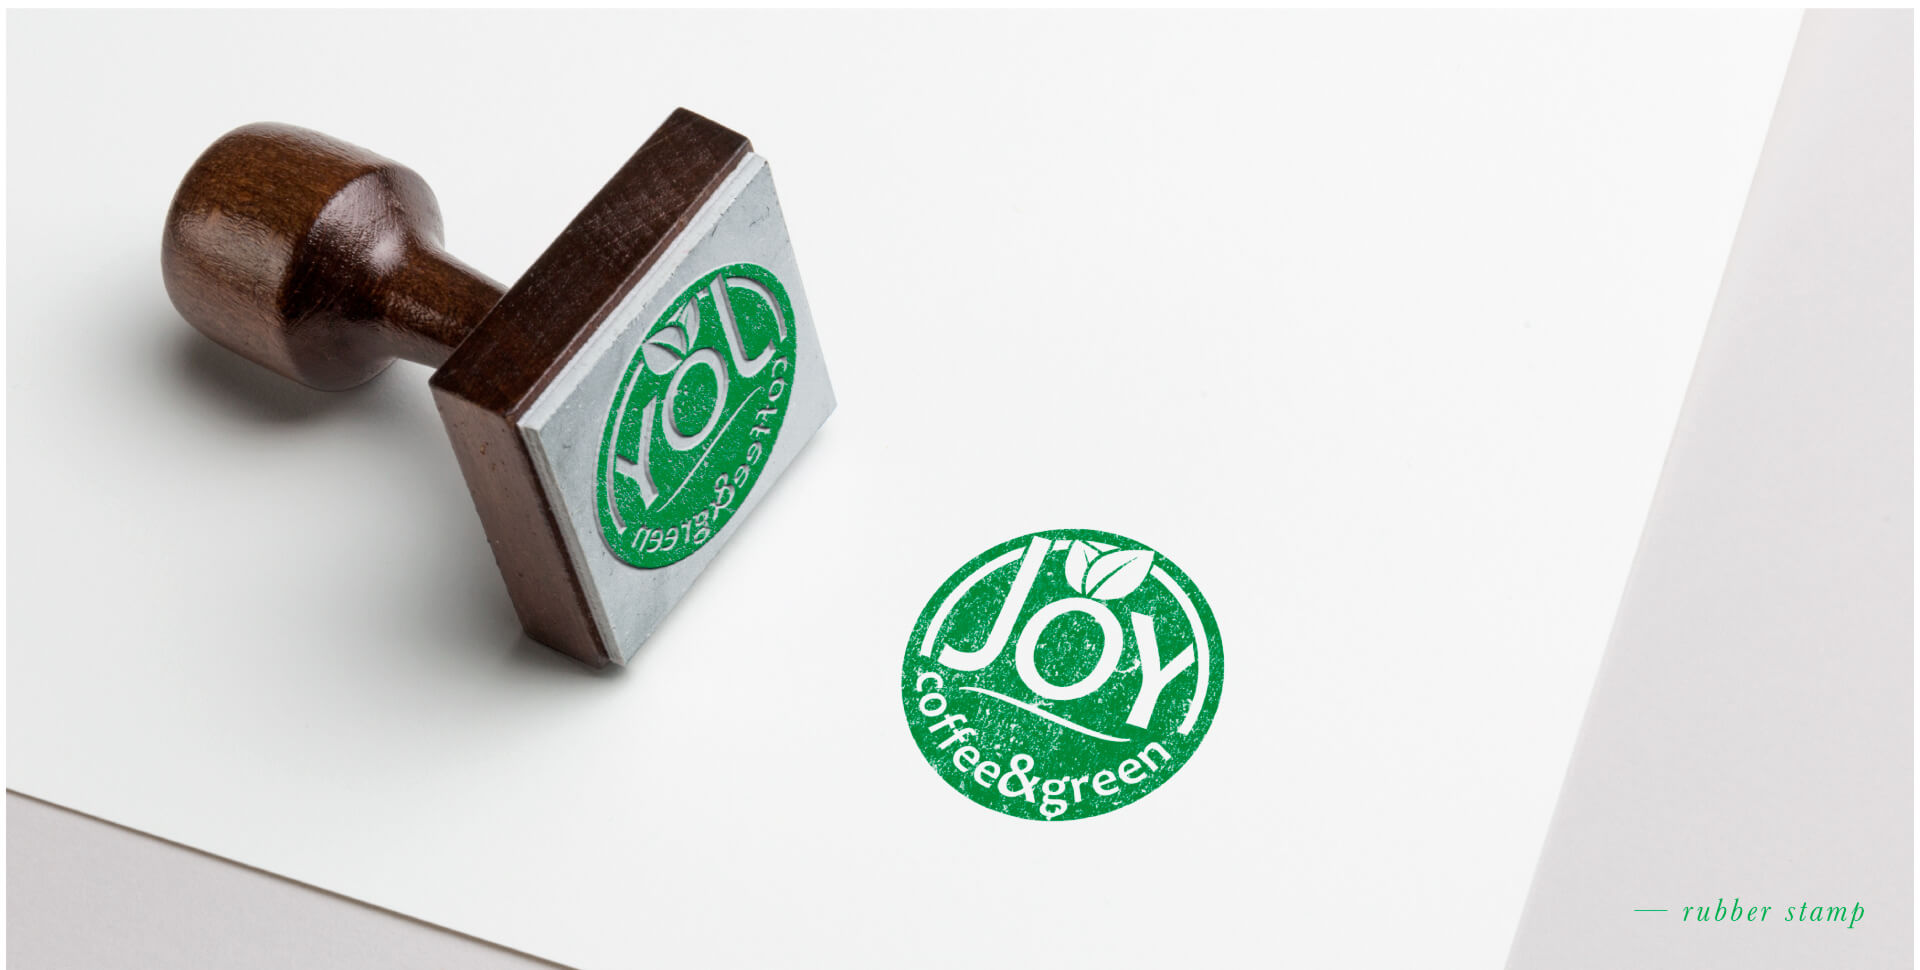 03-Joy-coffee-green-milano-logo-timbro